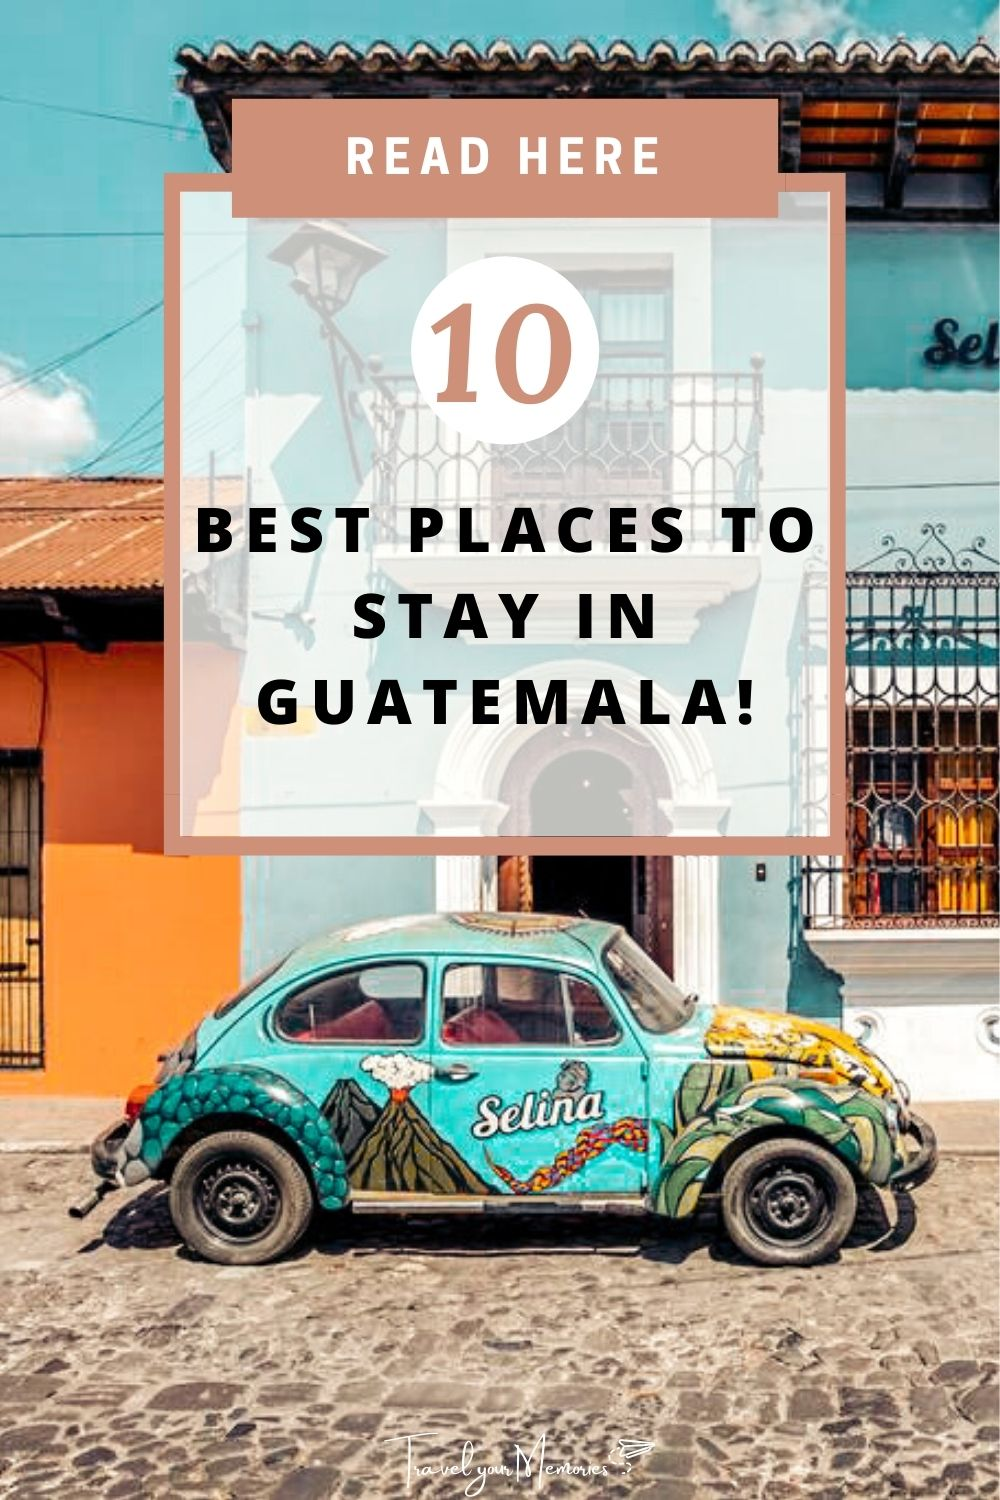 Best places to stay in Guatemala